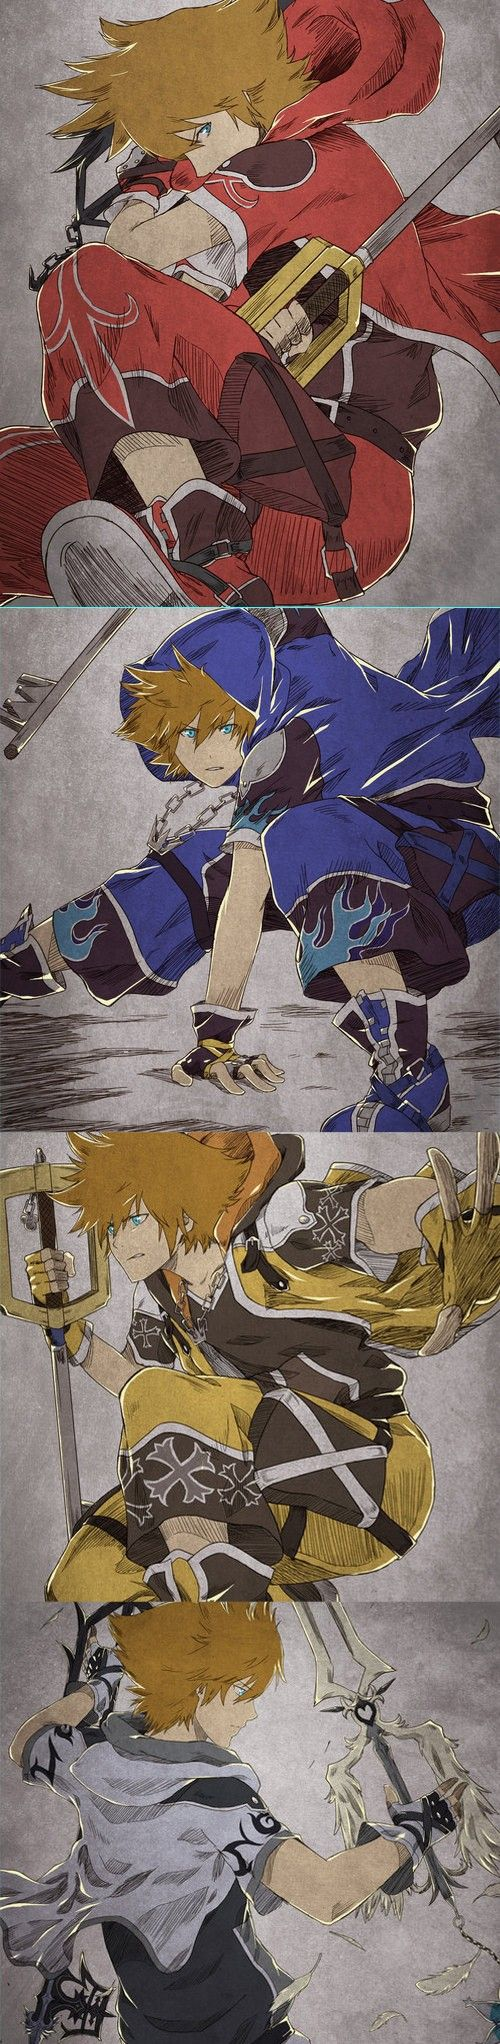 Kingdom Hearts fan art by MRLIPSCHUTZ. What is up with that screen name.